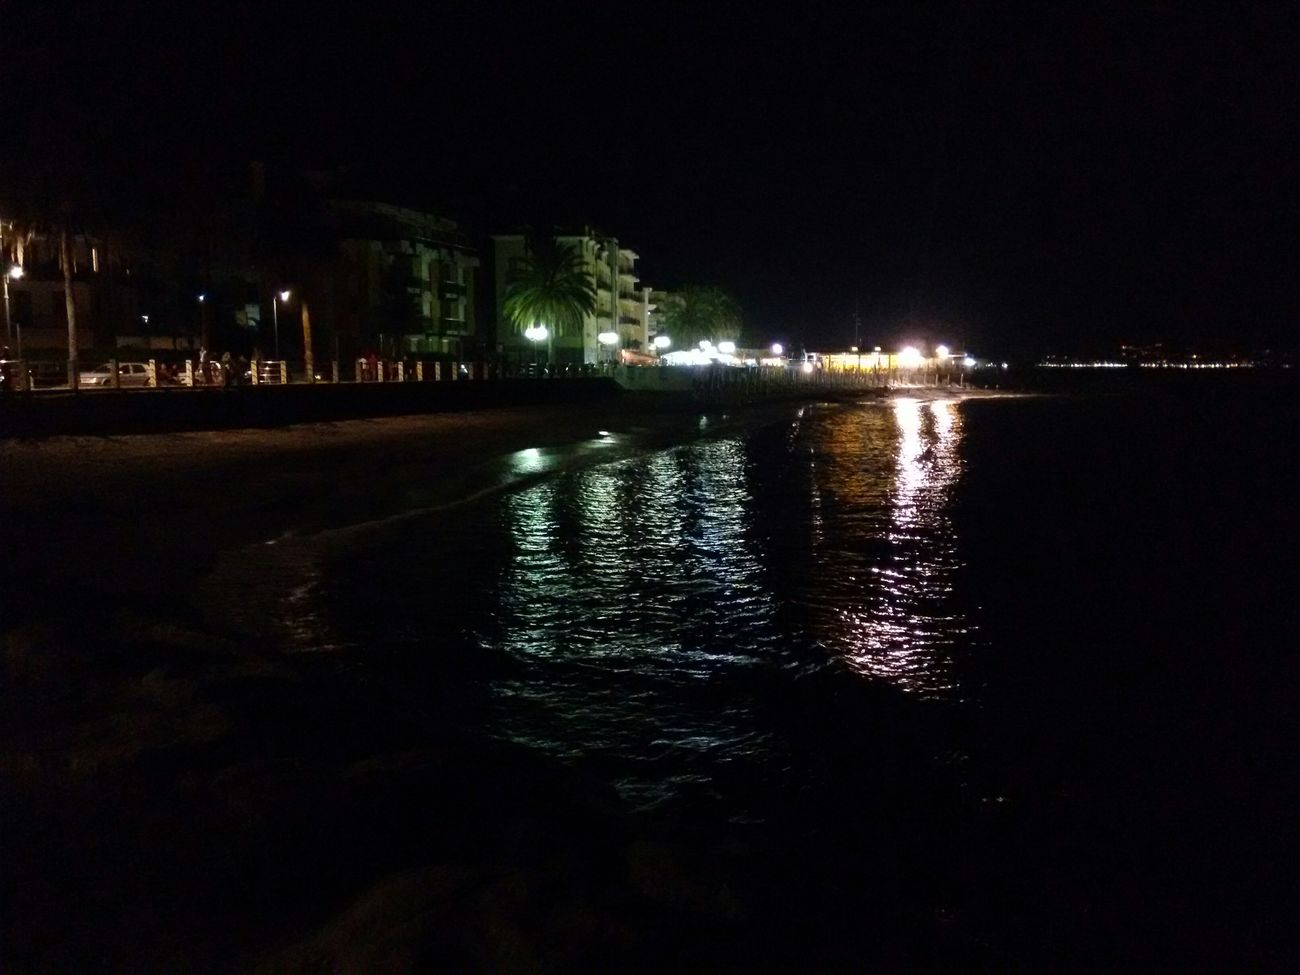 Beatiful Place Nature Beach Night Life Sea And Dark Sky Night Photography Stunning View Reflections In The Water at Albenga in Liguria, Italia /Italy